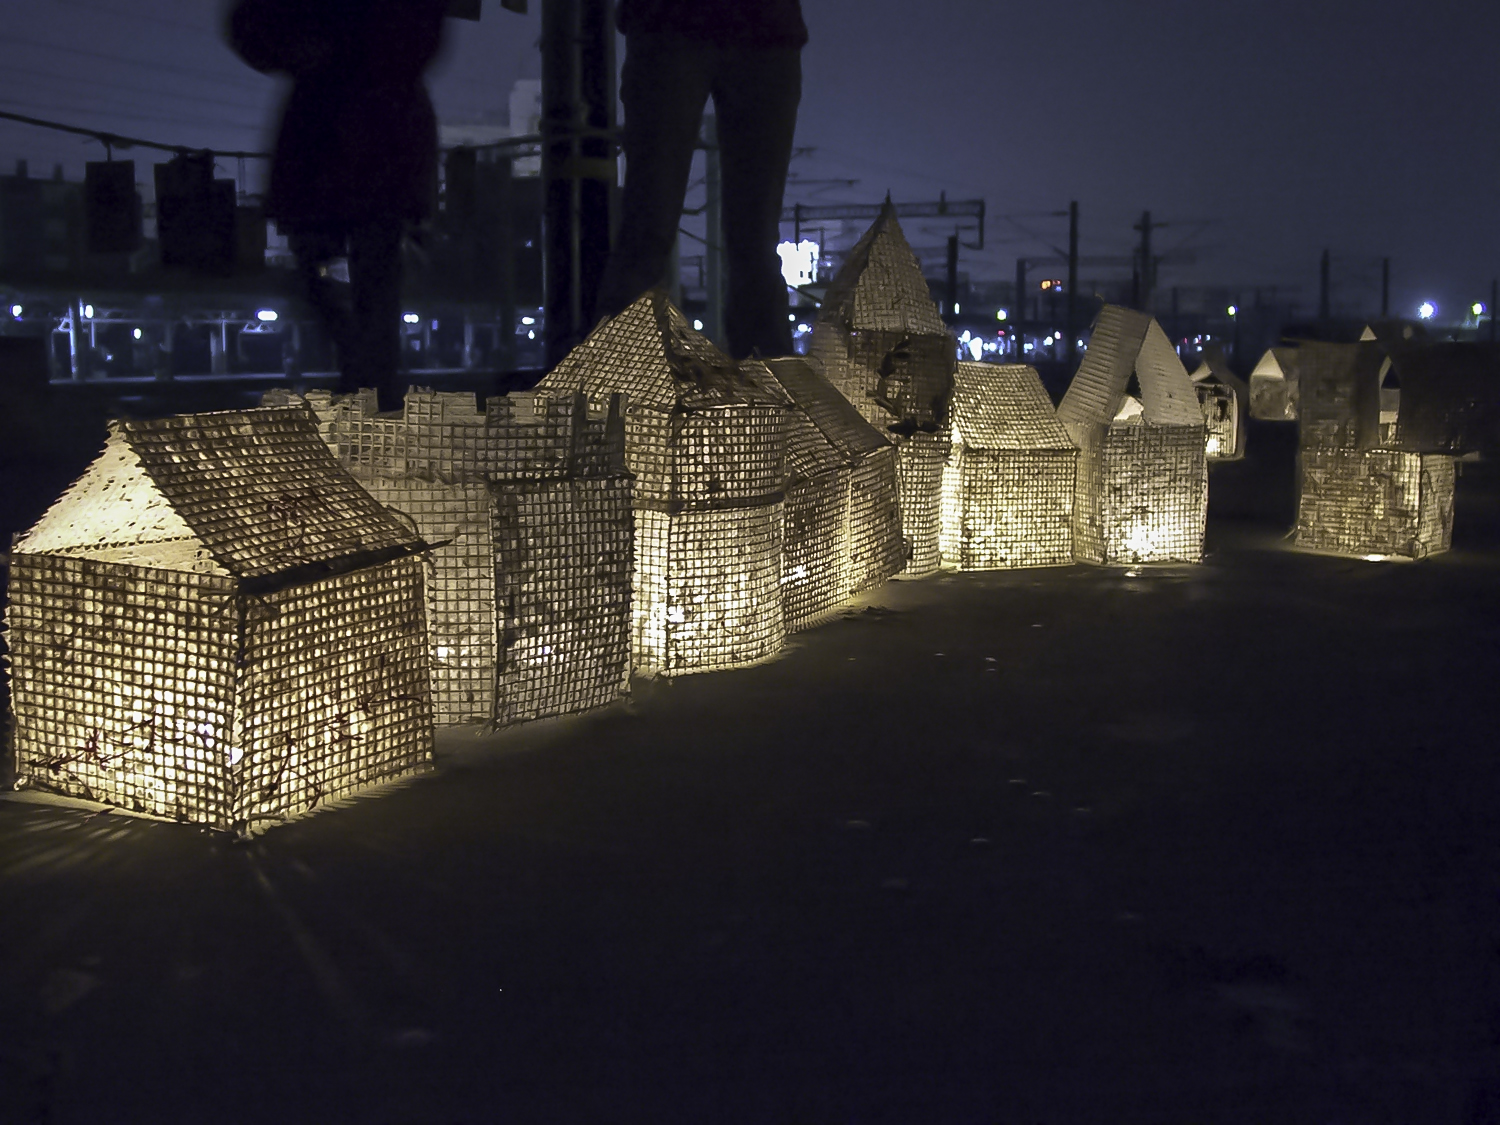 Hand Dipped Paper Houses for a Project Led By Jane Ingram Allen, While a Fulbright Scholar in Taiwan.